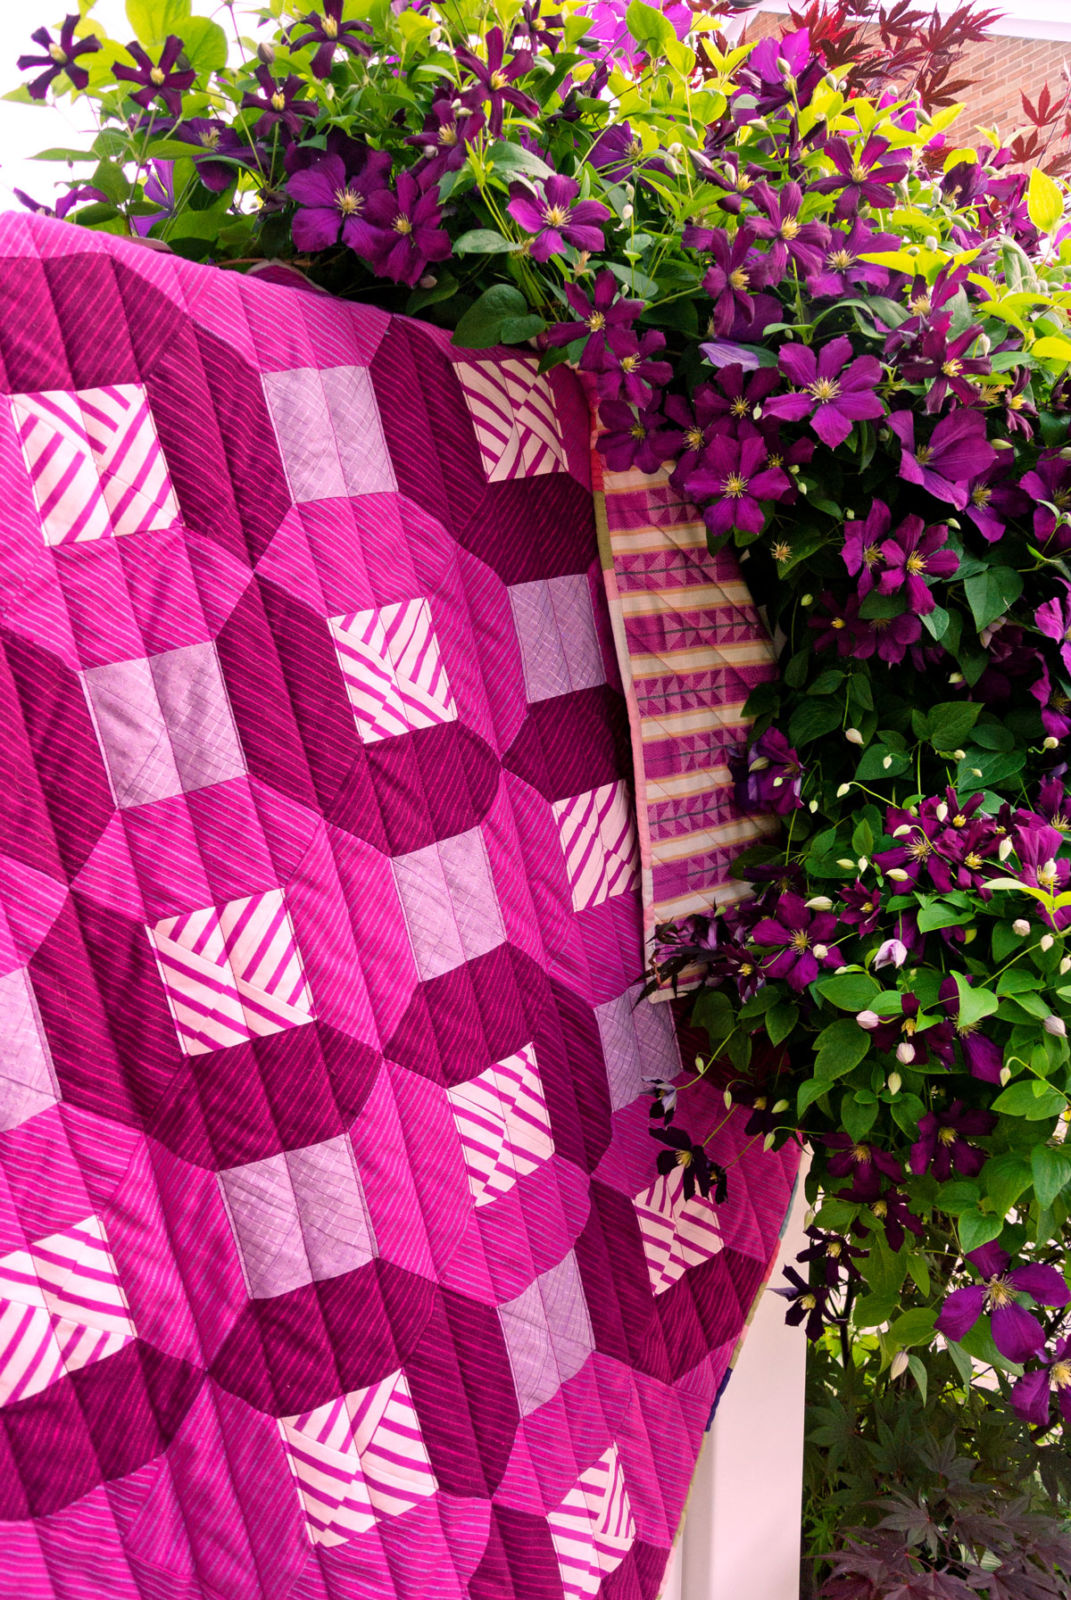 The Glitter & Glow quilt pattern is beginner friendly and also incredibly versatile. Use yardage, fat quarters or scraps! This baby quilt is rich in texture by incorporating Alison Glass mariner cloth